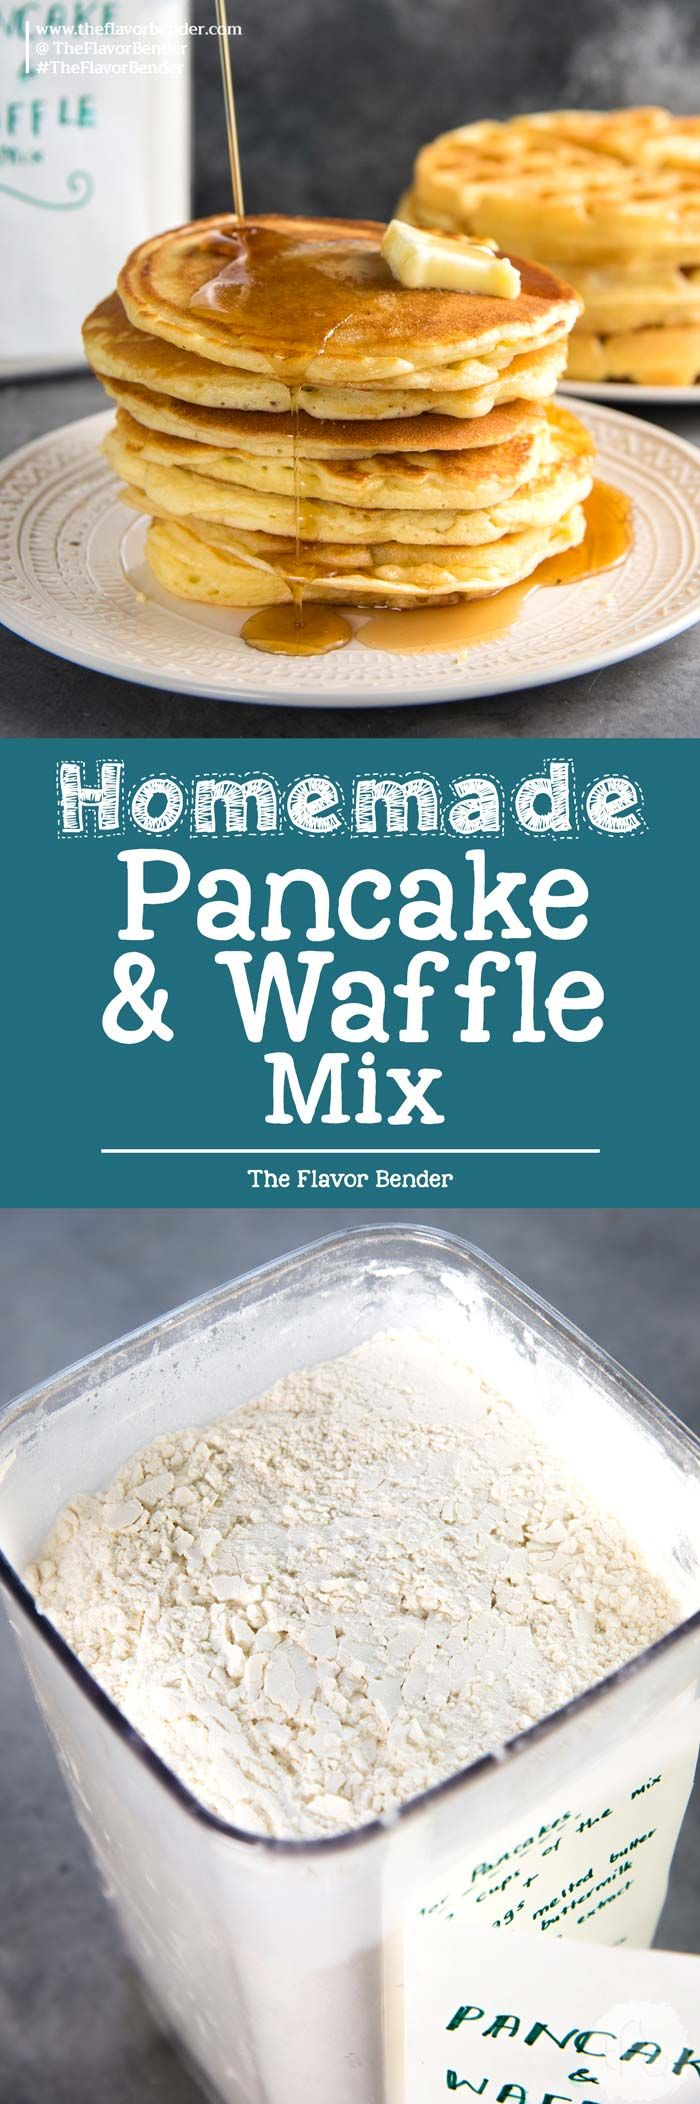 Homemade Pancake Mix / Waffle Mix - The best pancake or waffle mix from scratch that makes fluffy, light pancakes or crispy, light waffles! Far better than store-bought instant pancake mixes. Easy and fool proof, you can have pancakes any day! via @theflavorbender